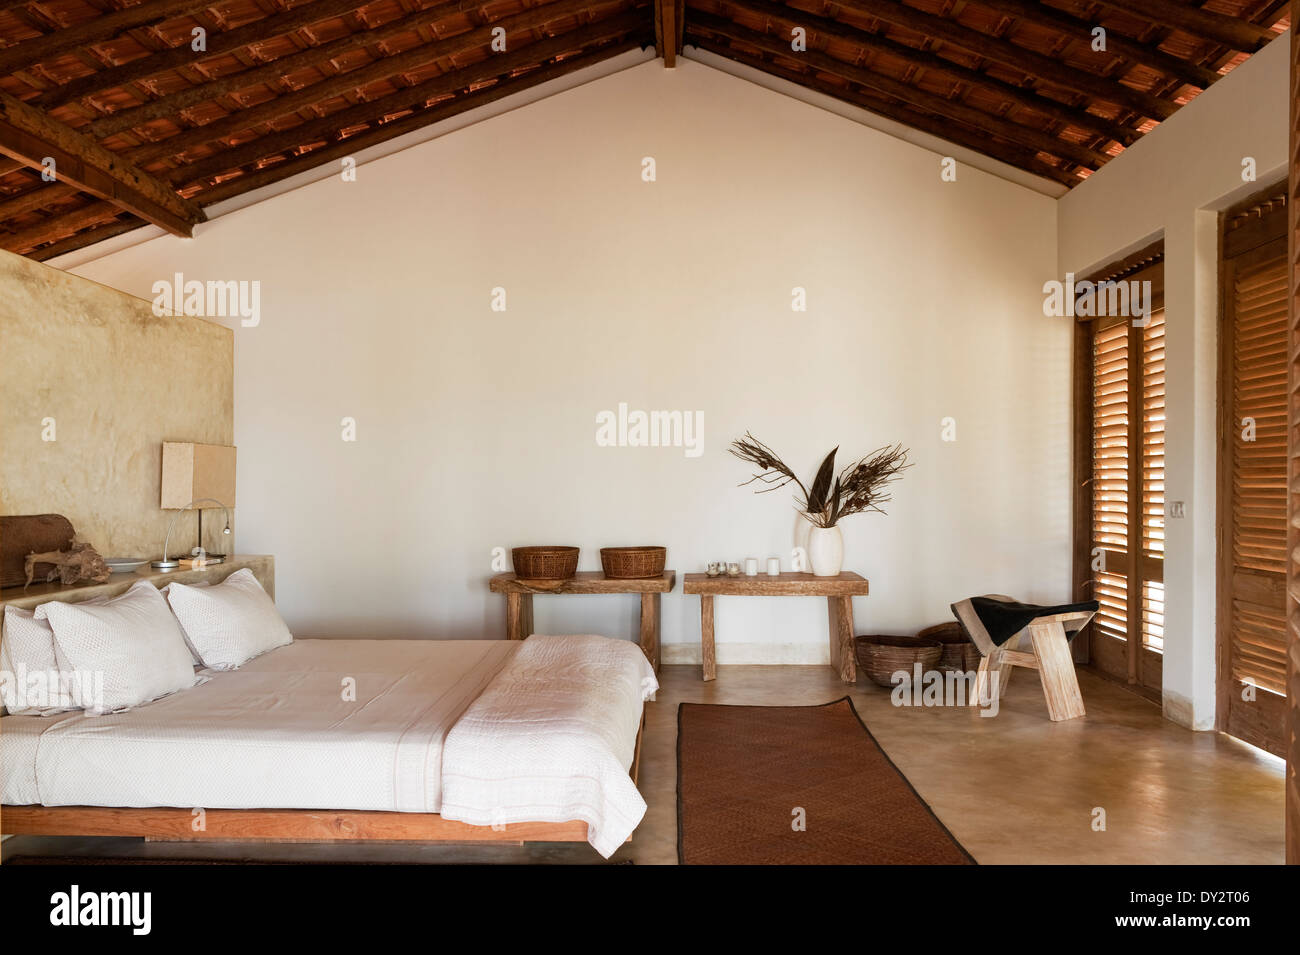 Beamed bedroom of Goan beach house, India - Stock Image